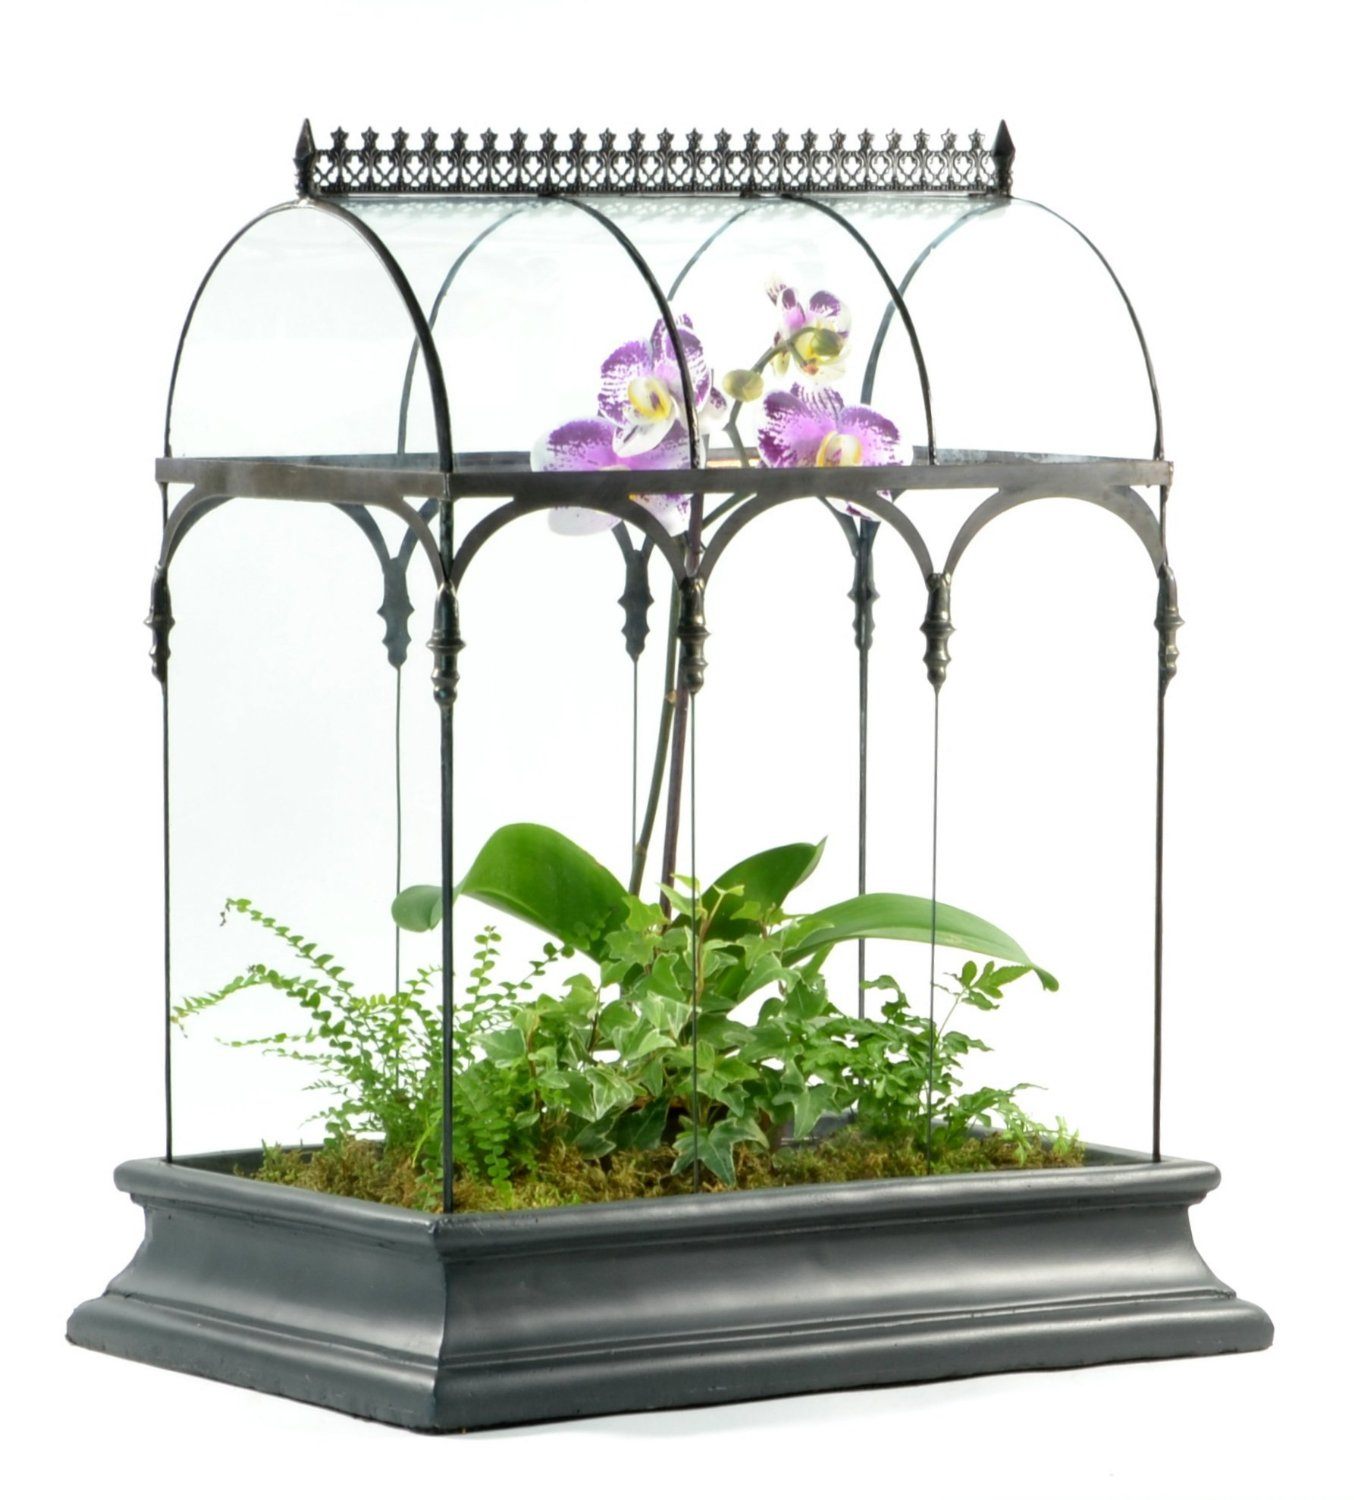 The Wardian Case And Terrariums And How To Make A Terrarium Garden Jlj Back To Classic Jljbacktoclassic Com